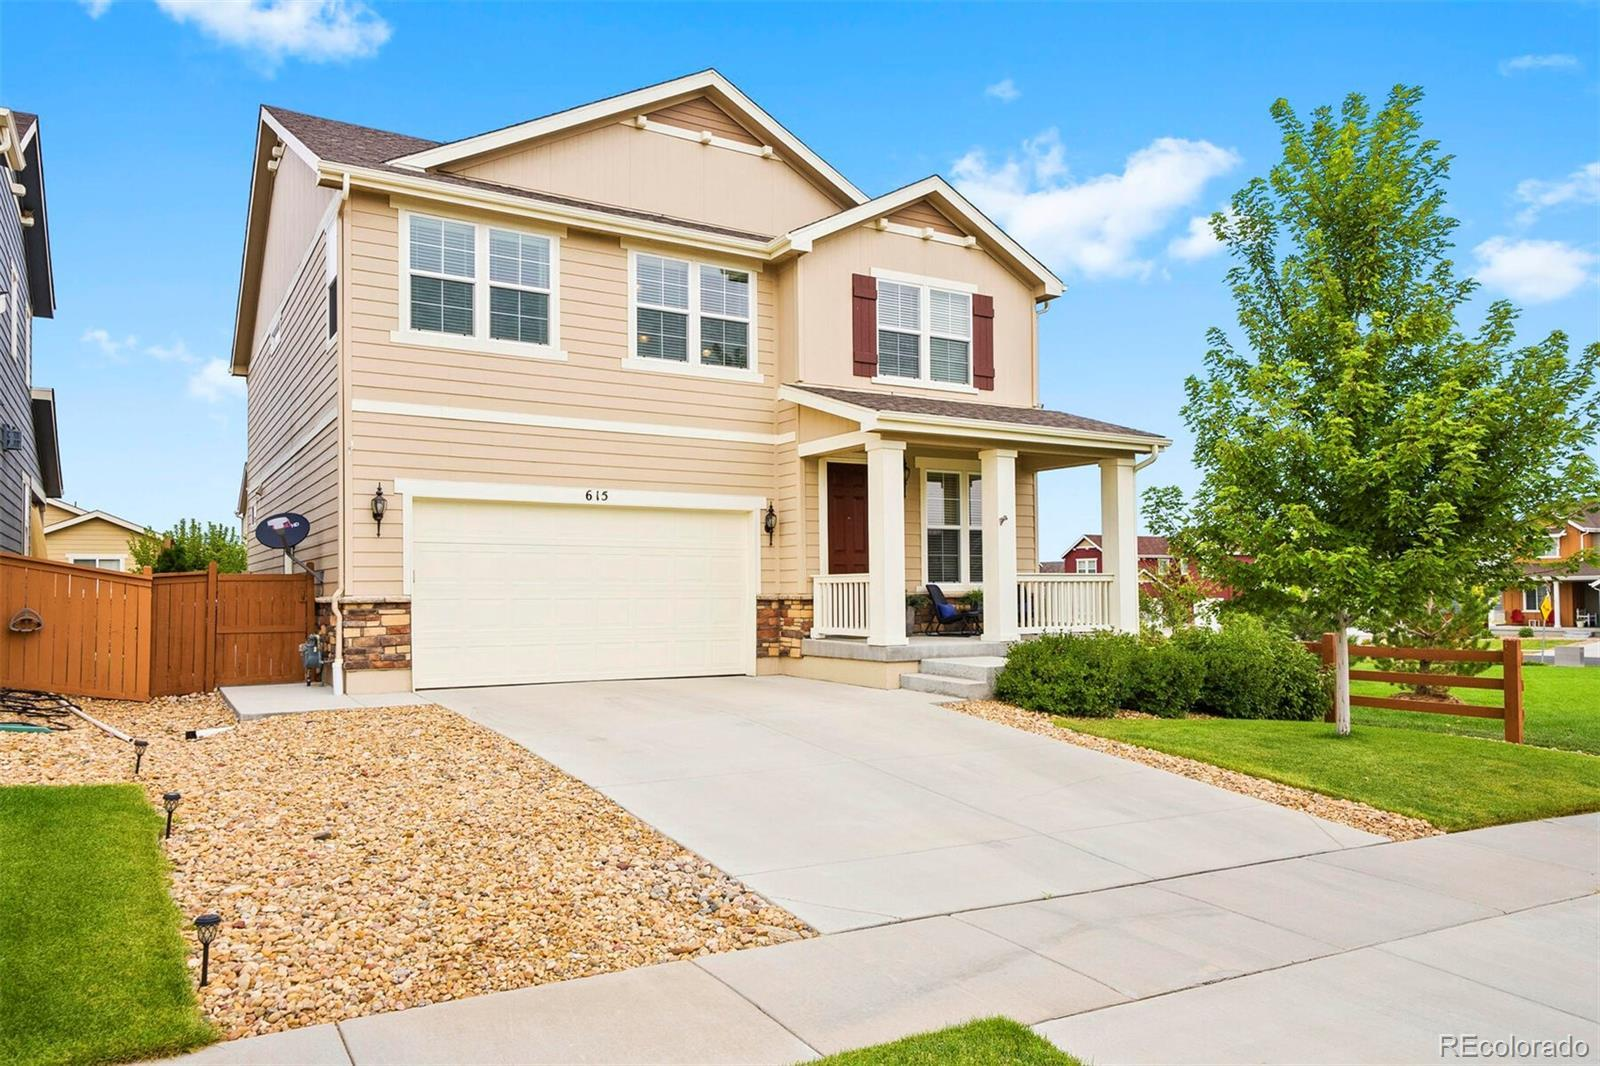 615 W 171st Place, Broomfield, CO 80023 - #: 2026226